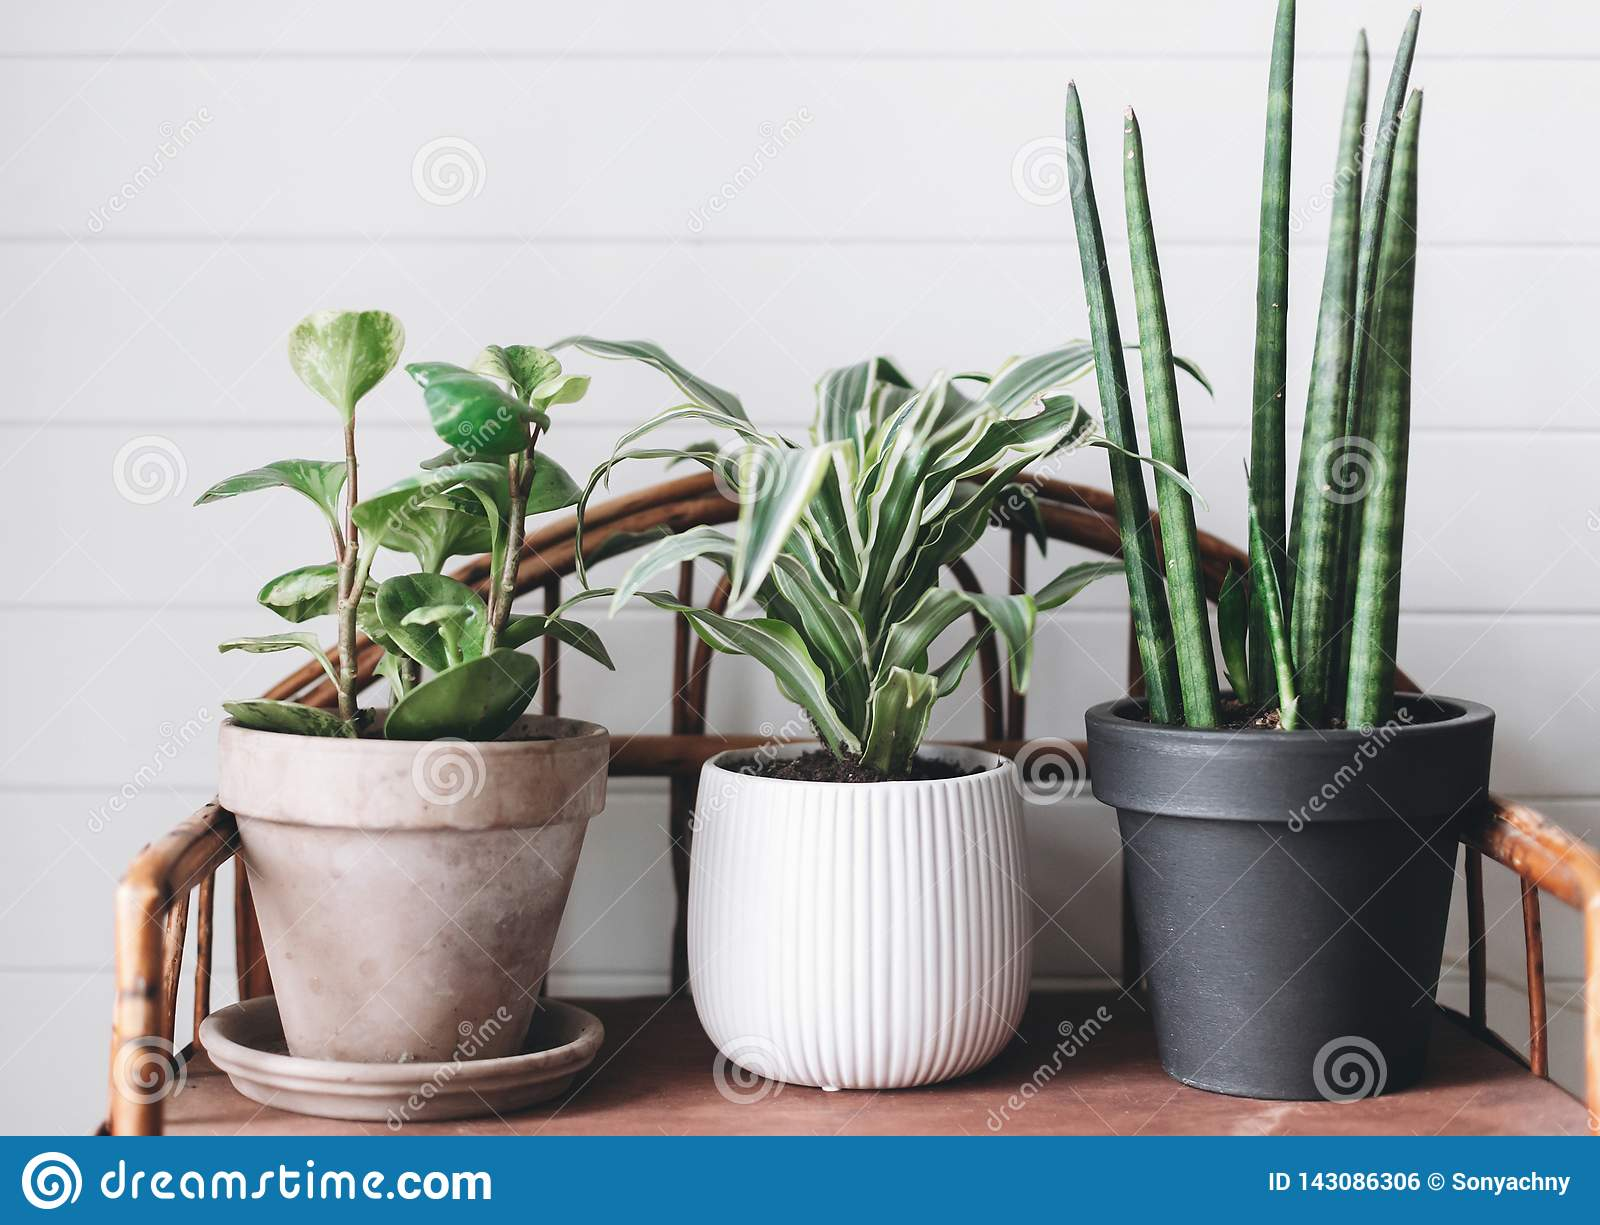 Stylish green plants in pots on wooden vintage stand on background of white rustic wall. Modern room decor. Peperomia, sansevieria